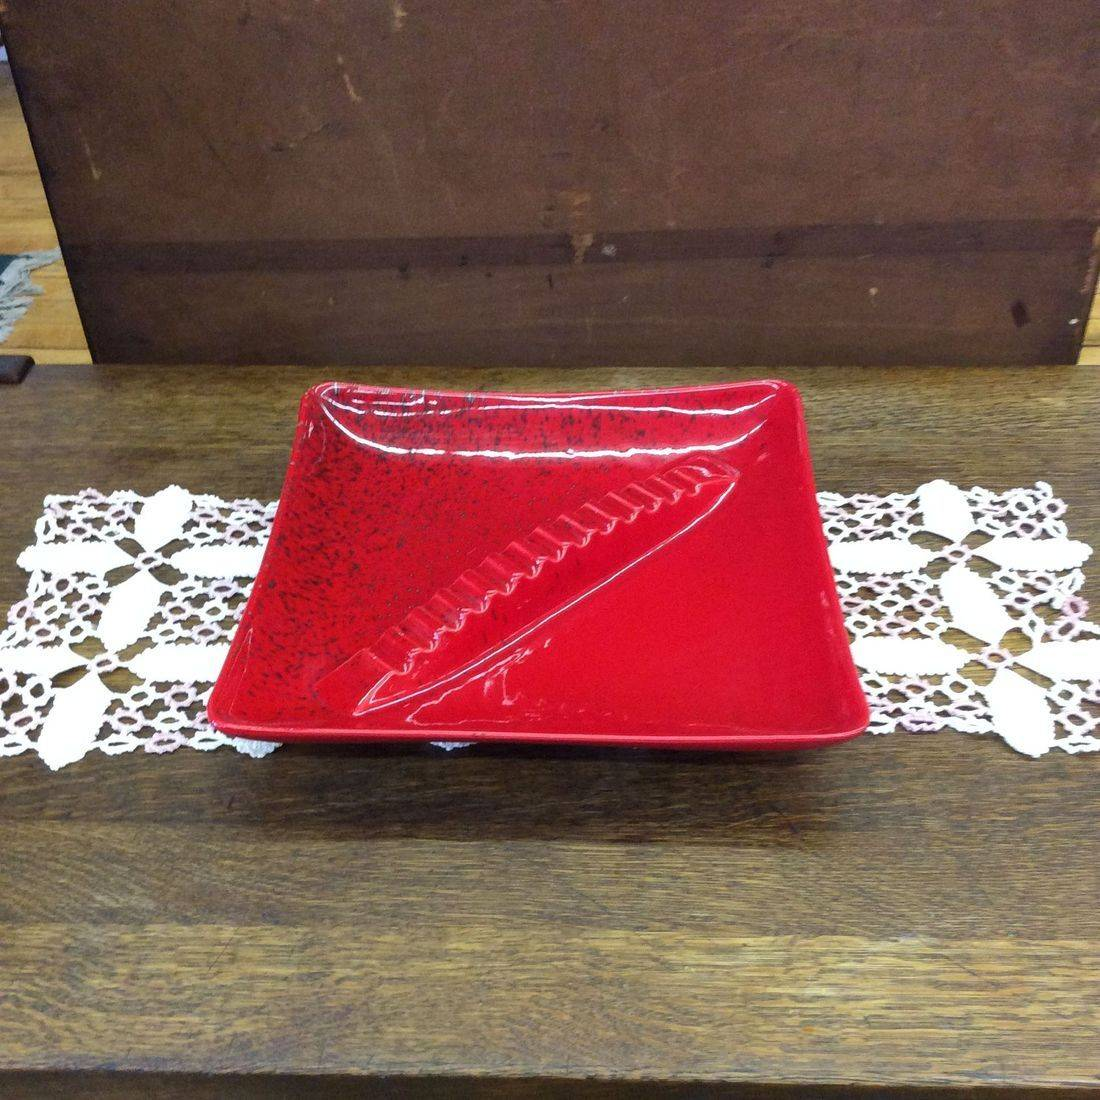 "1950's MCM Large Royal Haeger Art Pottery Red w/Black & Grey Specks Ashtray  14"" x 14"" x 3""H.  $55.00"